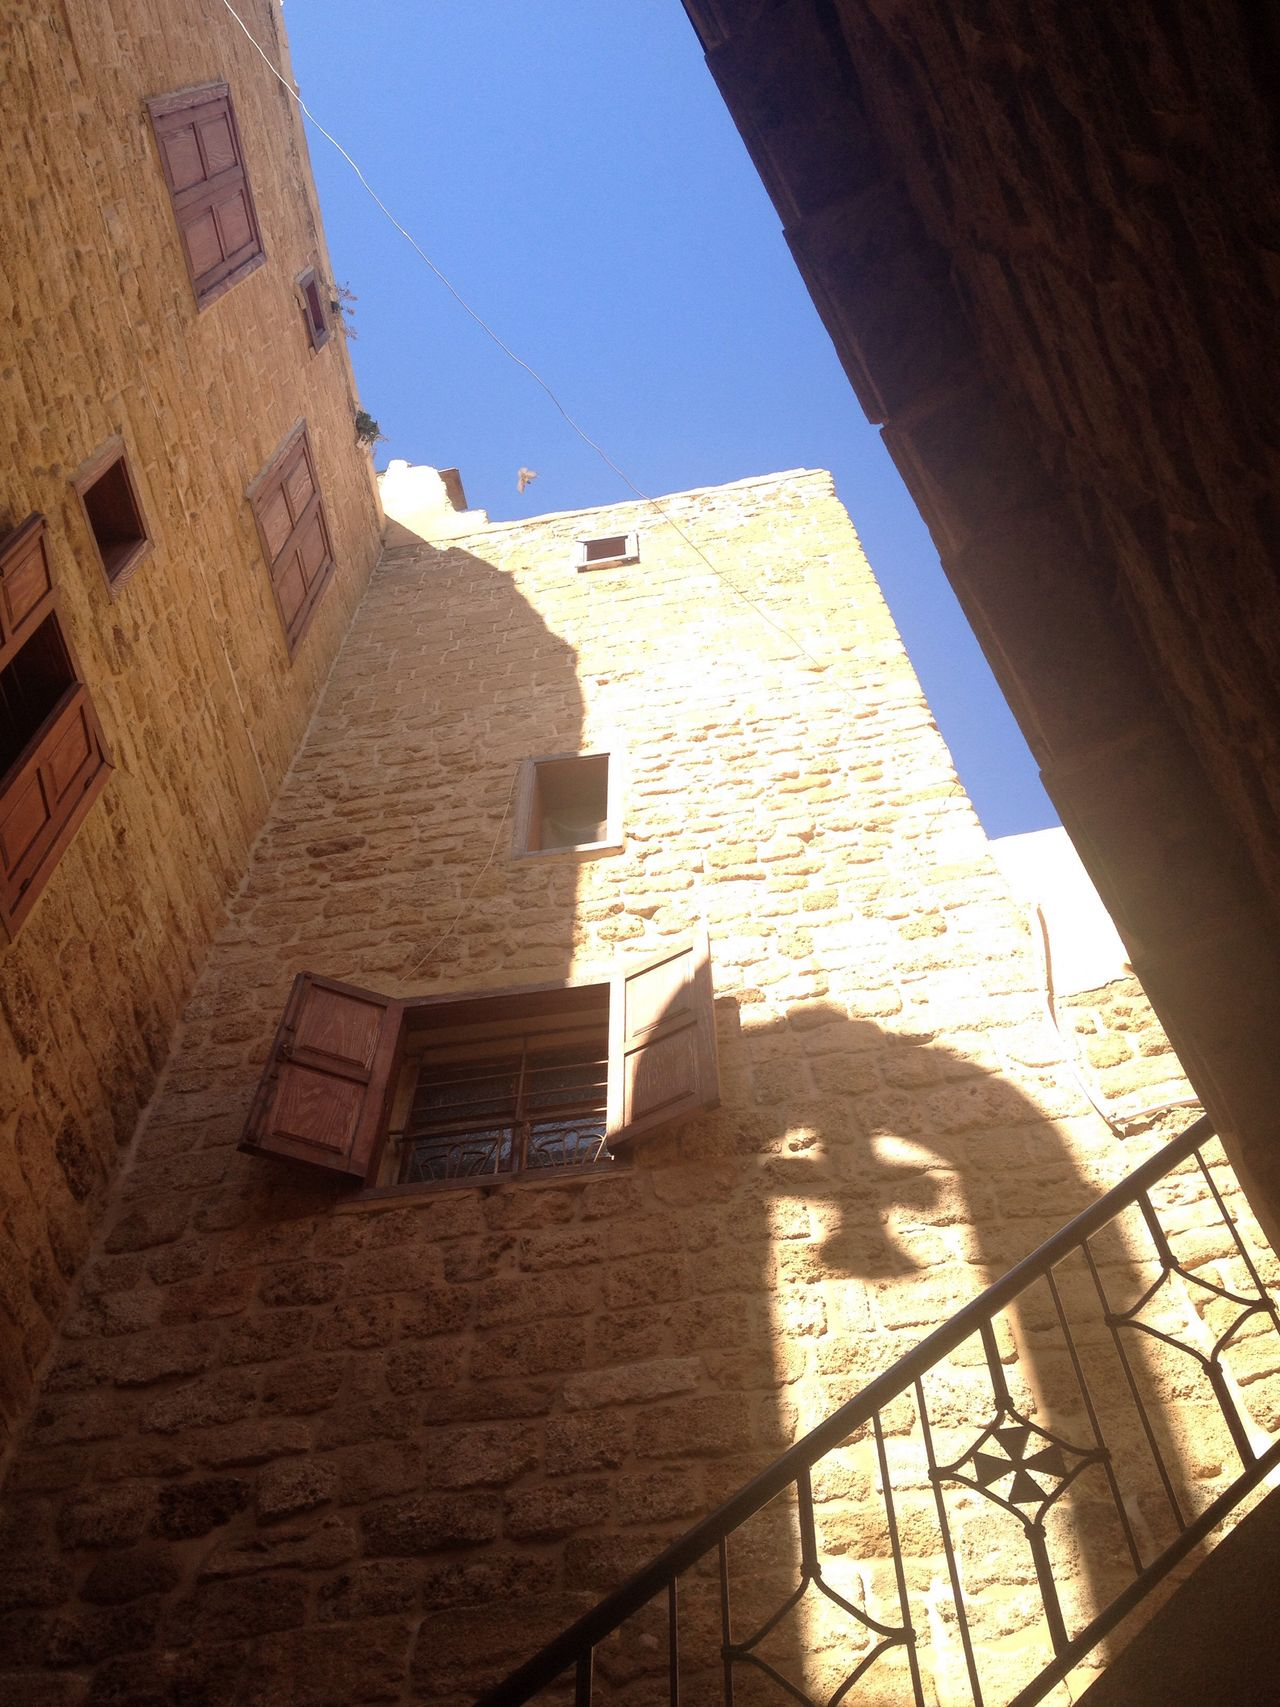 Church Reflection Old Church 8th Century Light And Shadow Reflection Blue Sky Old City Light And Shadow Steeple Sidon Lebanon St Nicholas Cathedral 8th Century The City Light